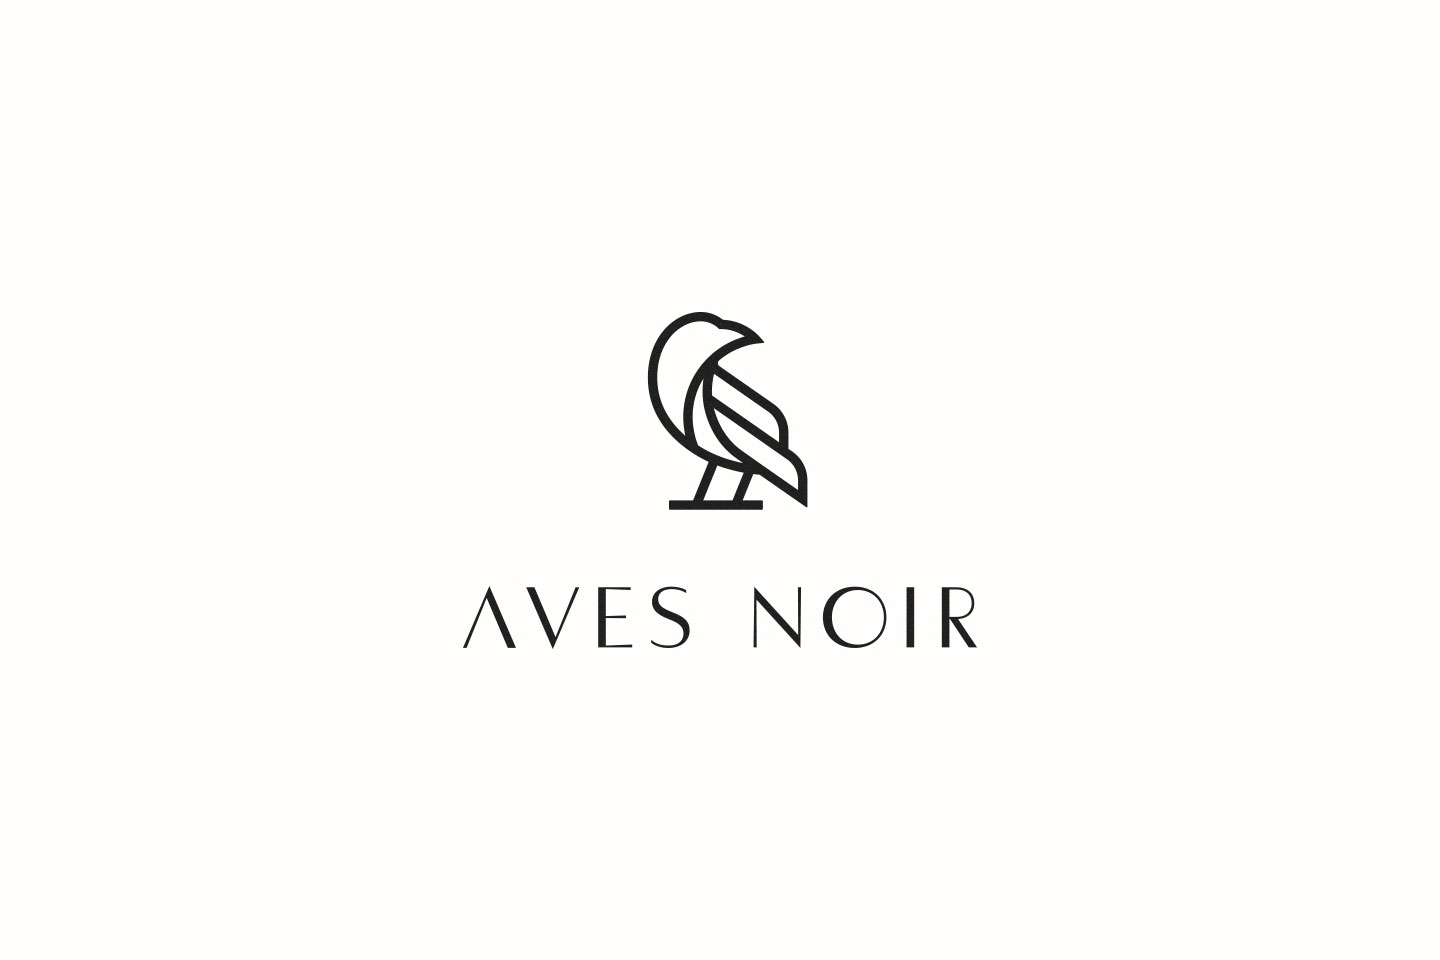 Aves Noir Lockup Stacked